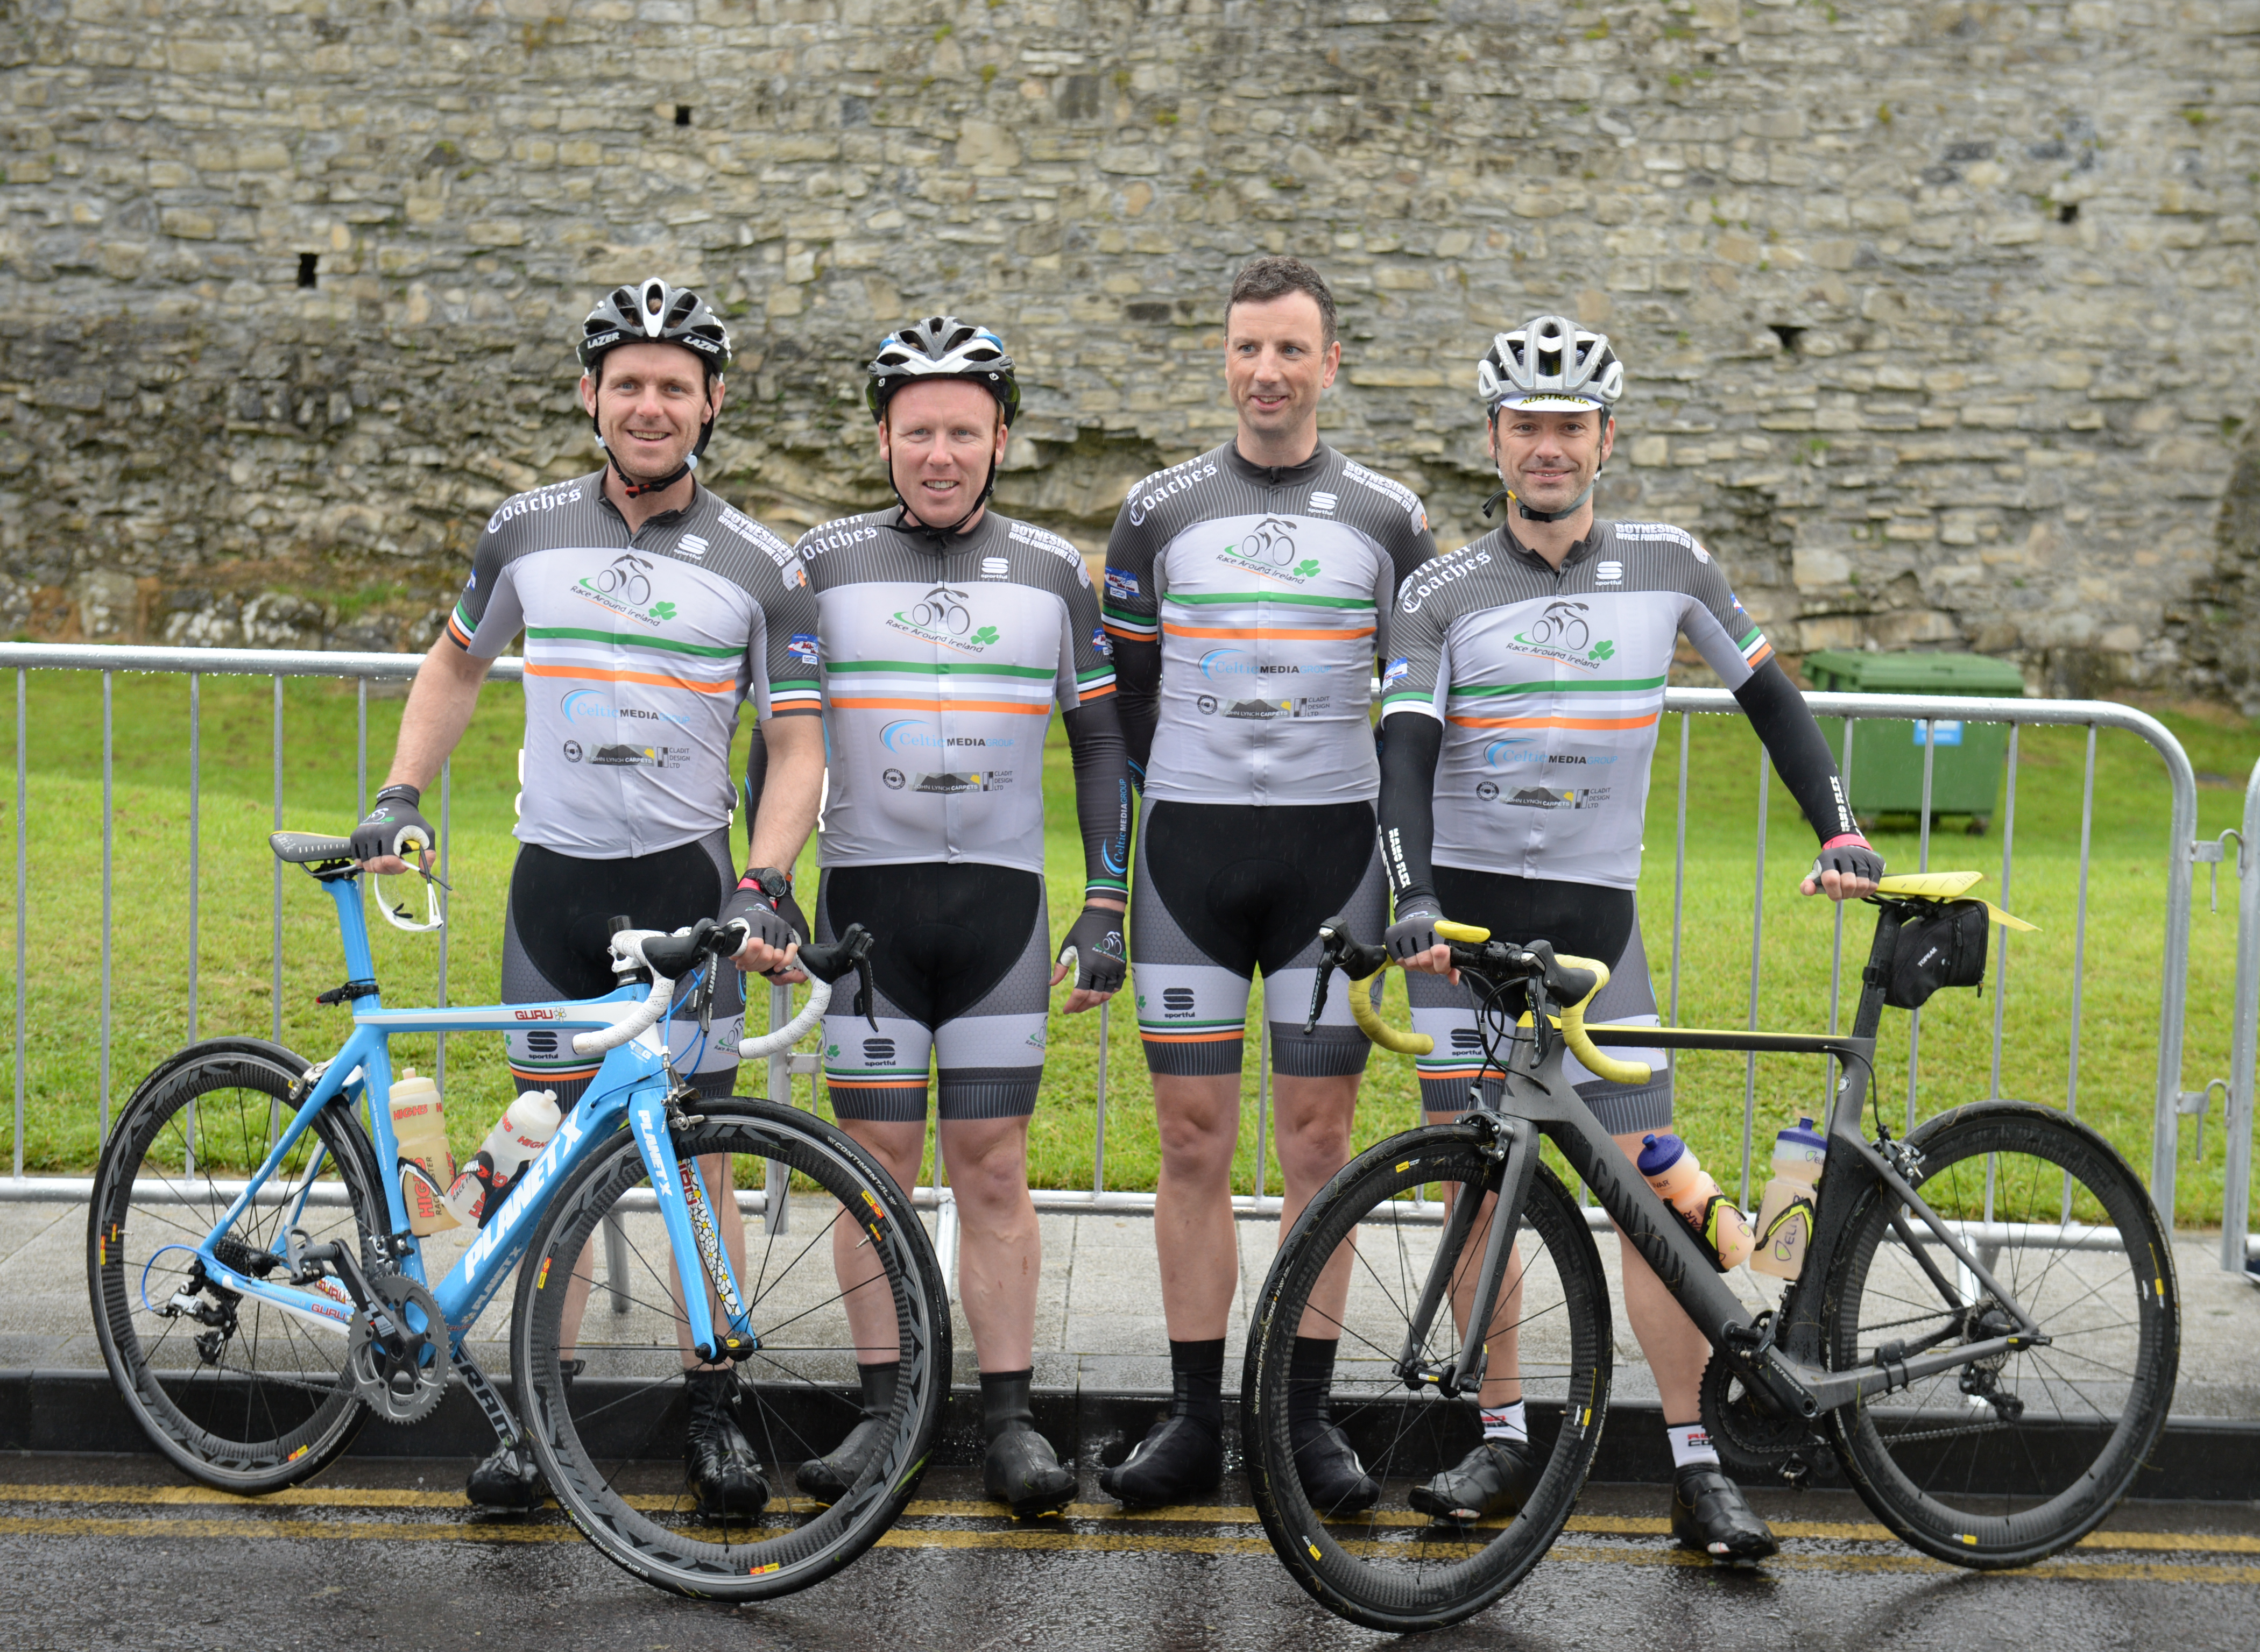 Barry Gaynor, Brendan Roe, Michael Mills and Dave Elson